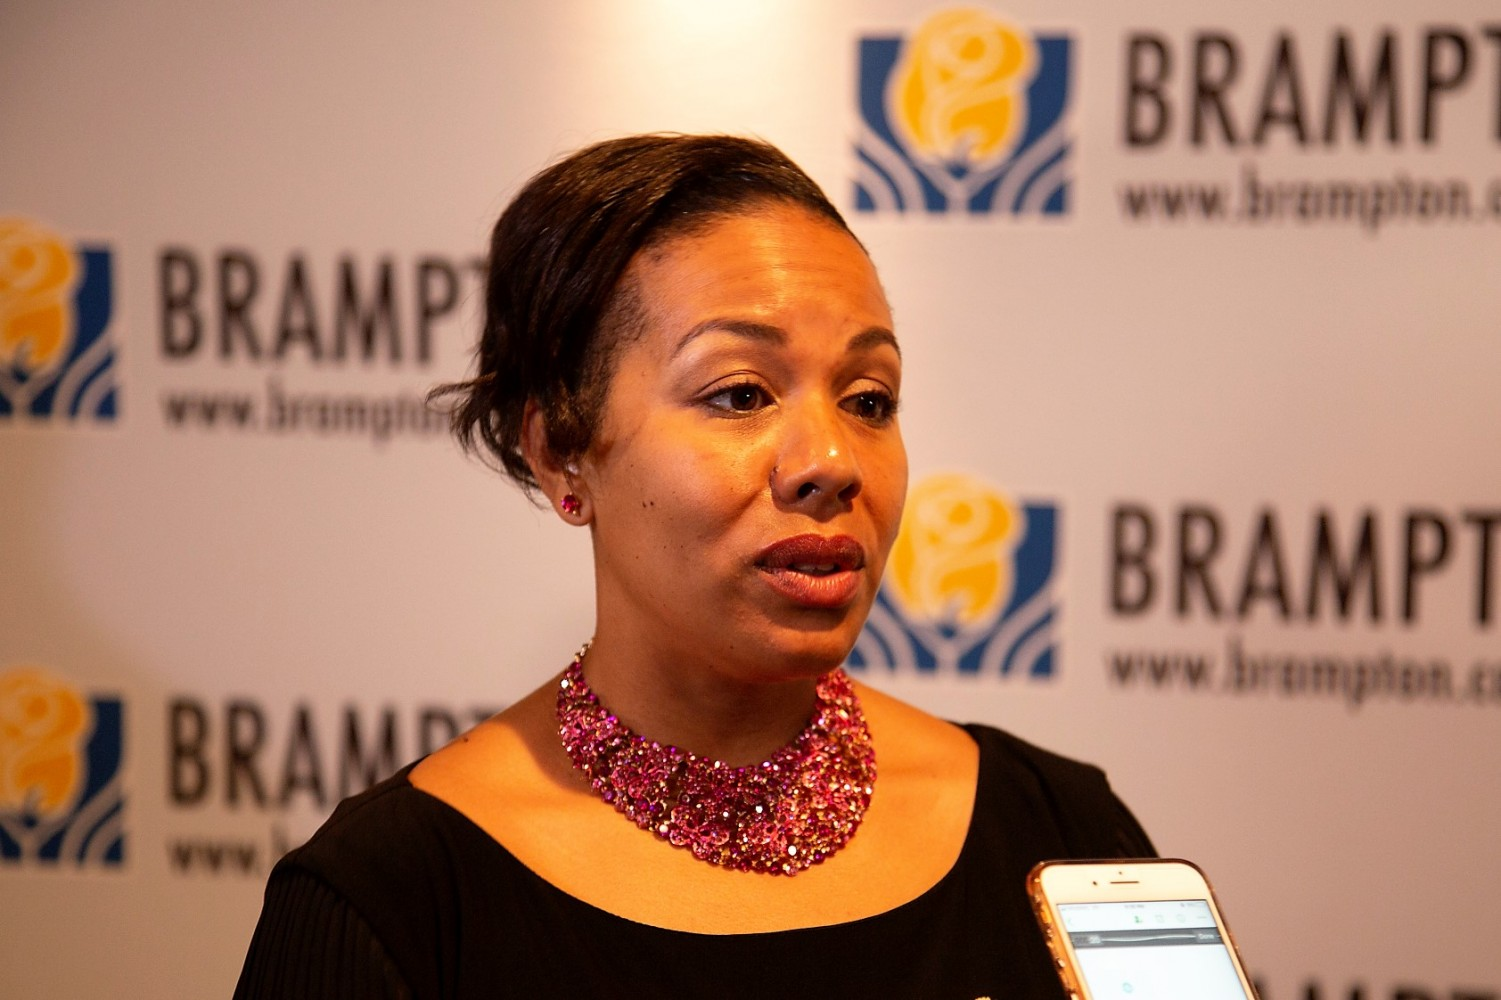 Councillor Charmaine Williams should be lauded for her progressive stance on policing, but she shouldn't stand alone